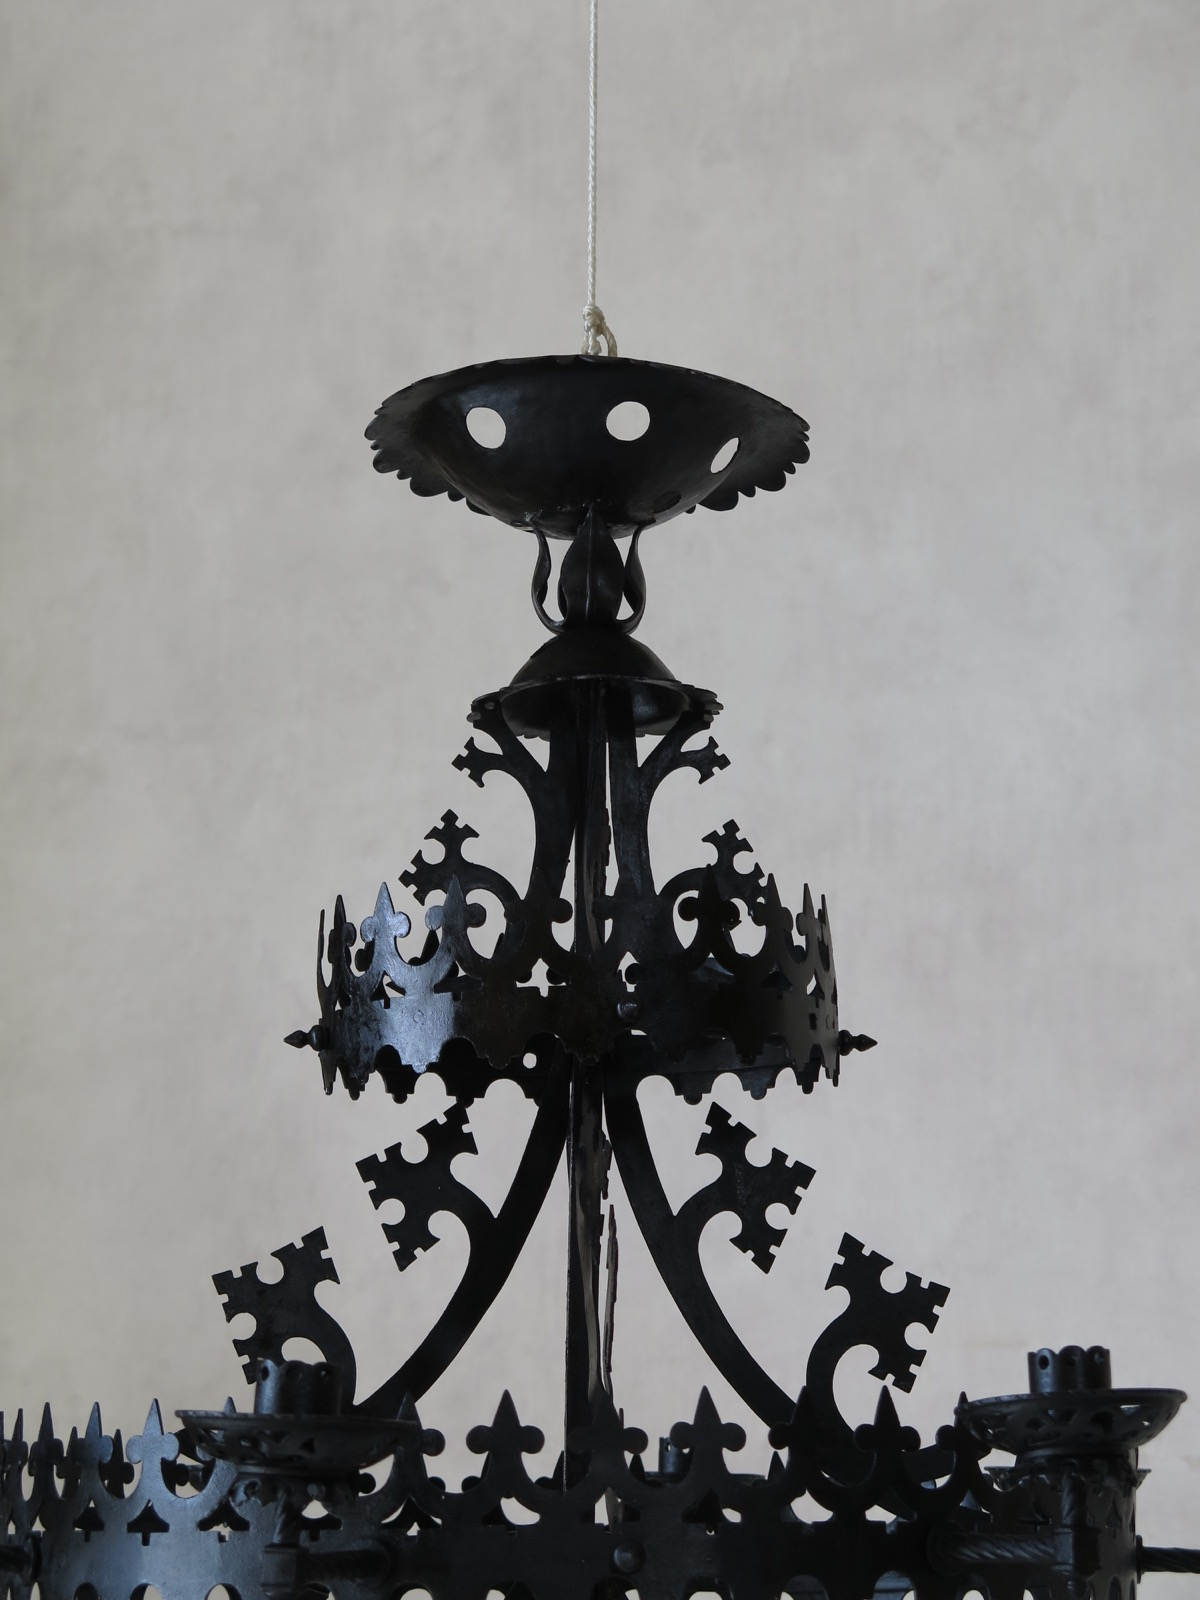 Marvelous Gothic Chandelier Designs | Redoubtable Hand Forged Iron Chandeliers Inspiration